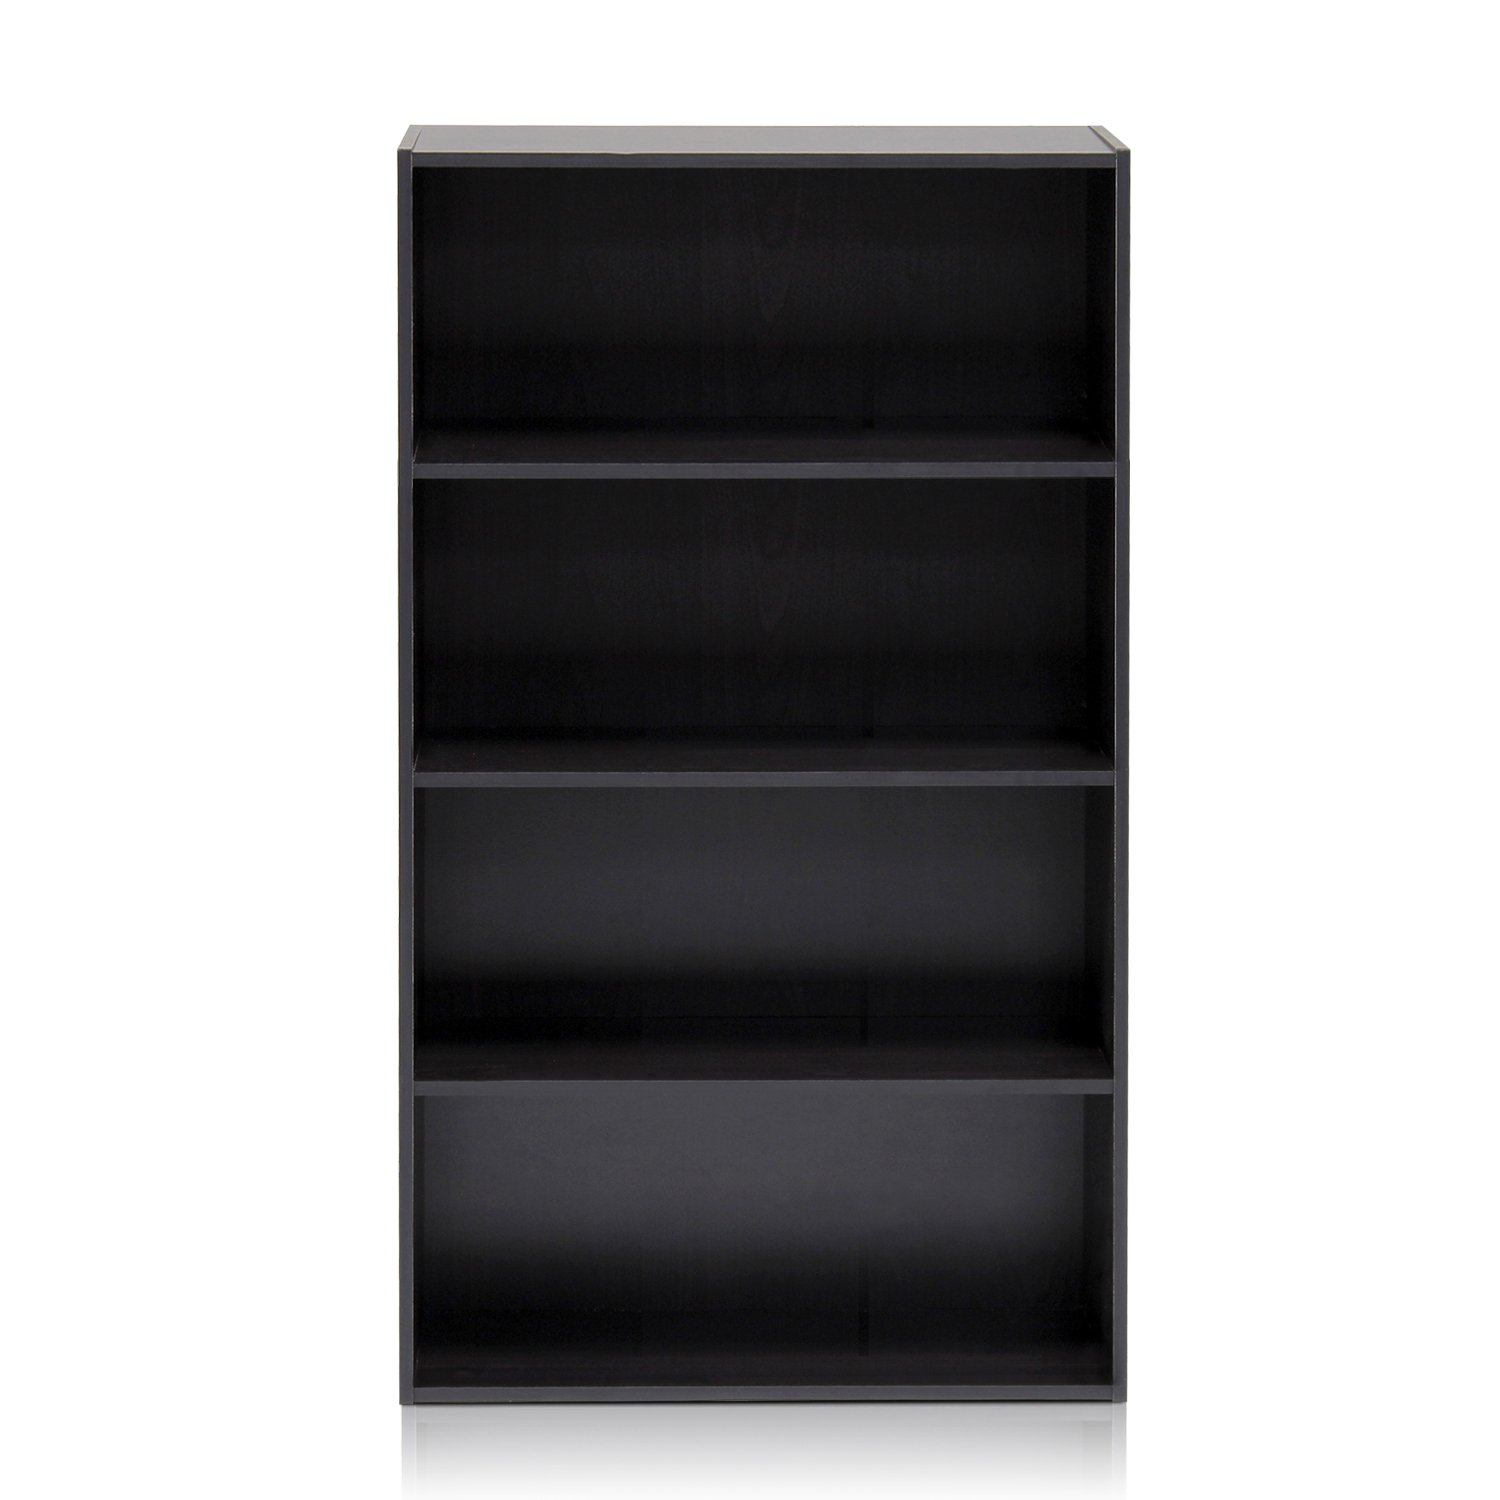 furinno 11209ex pasir 4 tier open shelf espresso - Small Bookshelves For Sale